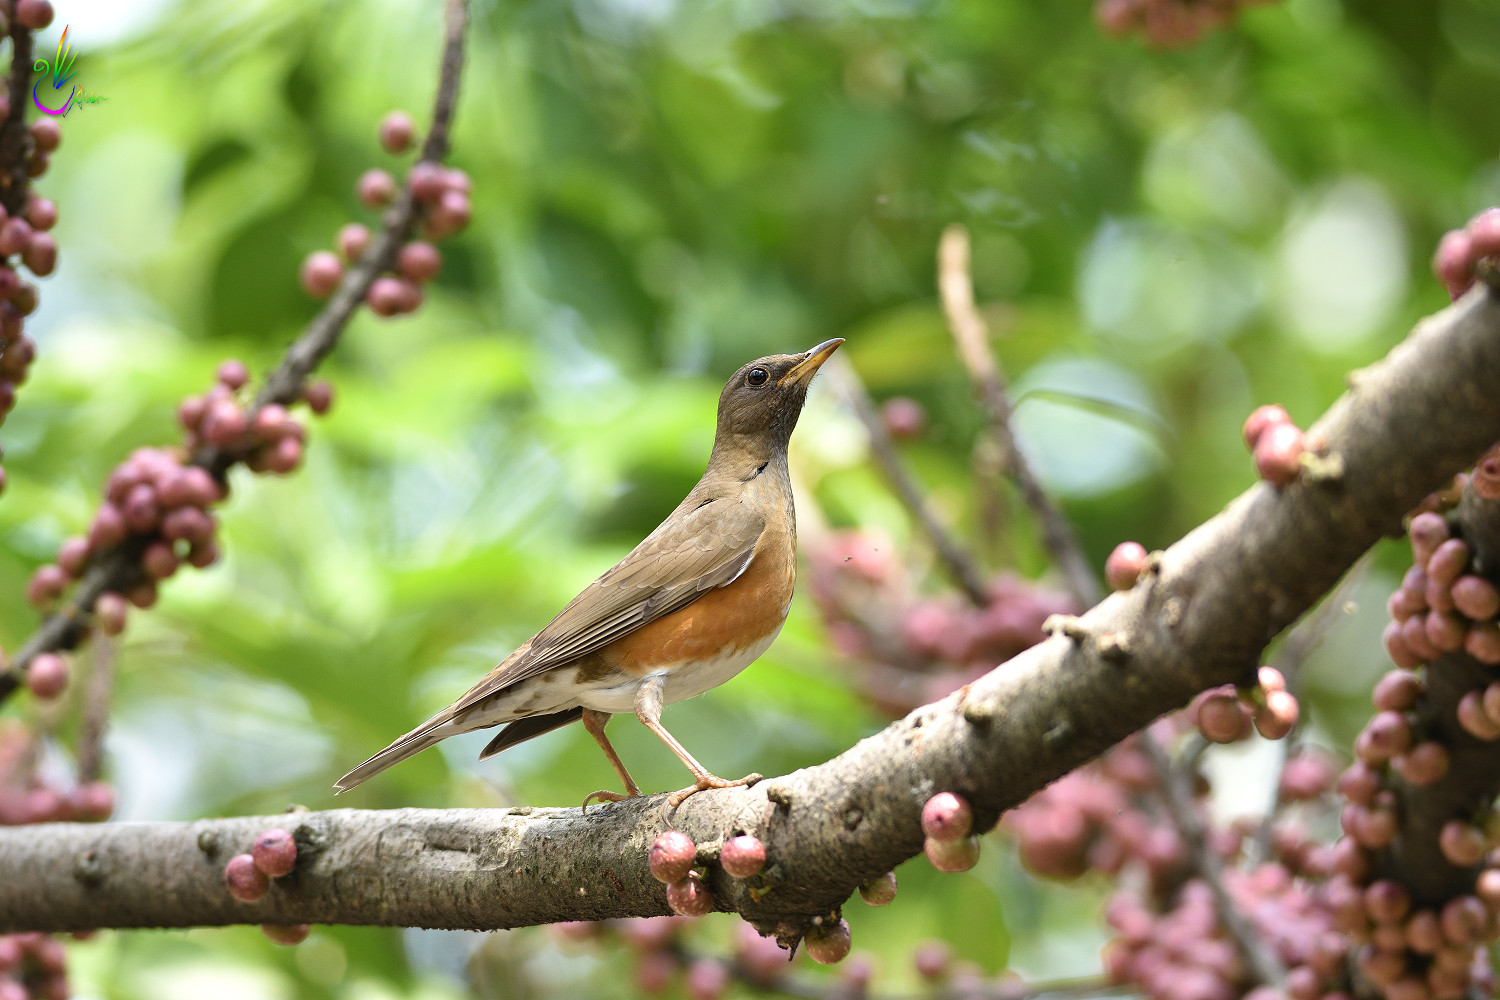 Brown_Thrush_6723